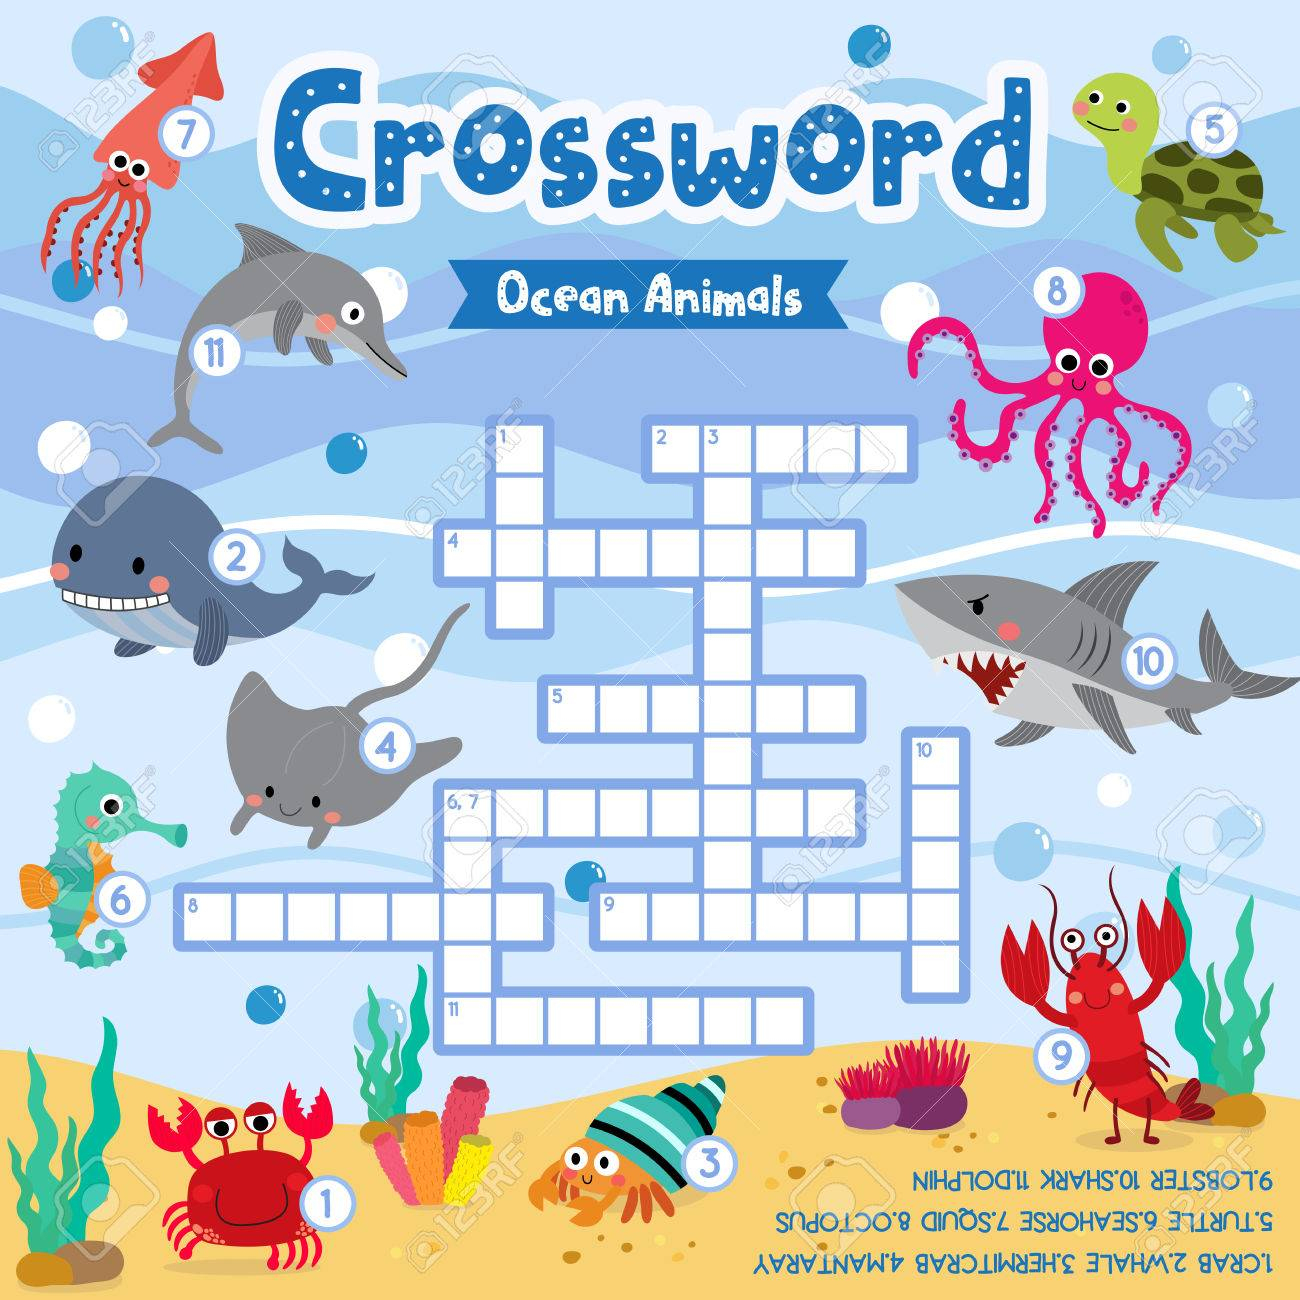 Crosswords Puzzle Game Of Ocean Animals For Preschool Kids Activity.. - Printable Ocean Crossword Puzzles